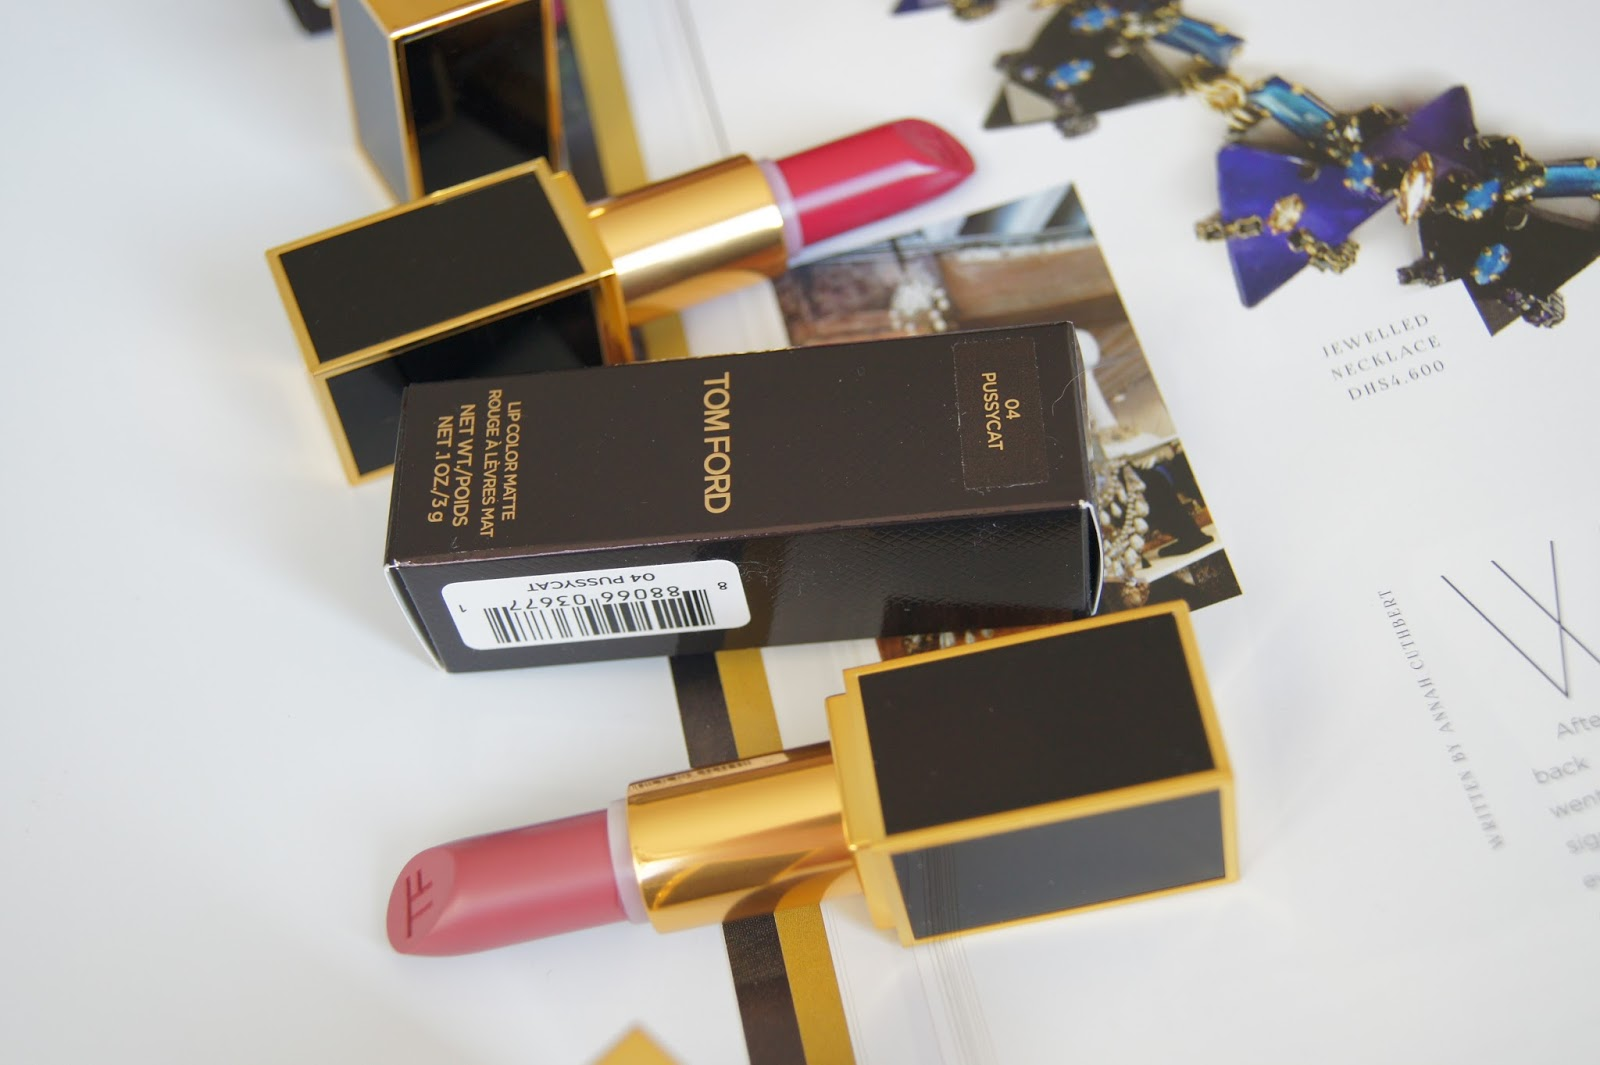 Tom Ford Matte lipsticks